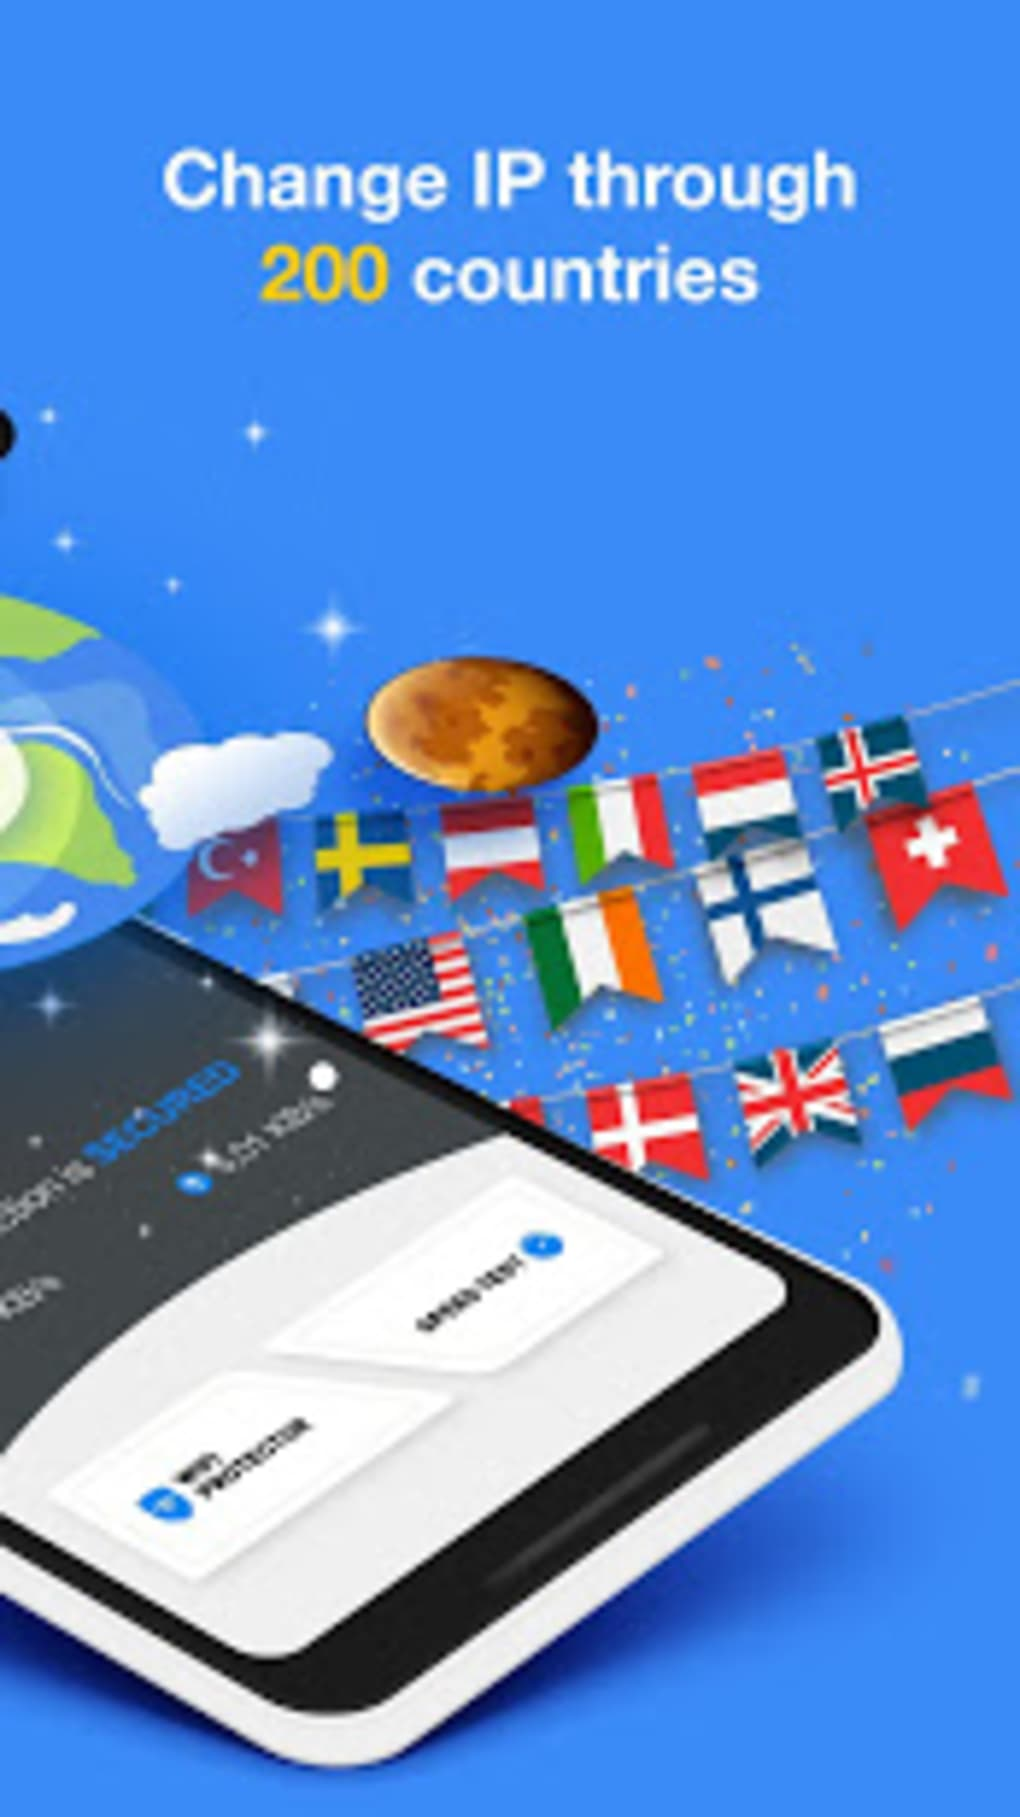 VPN Unlimited Unblock Websites - IP Changer for Android